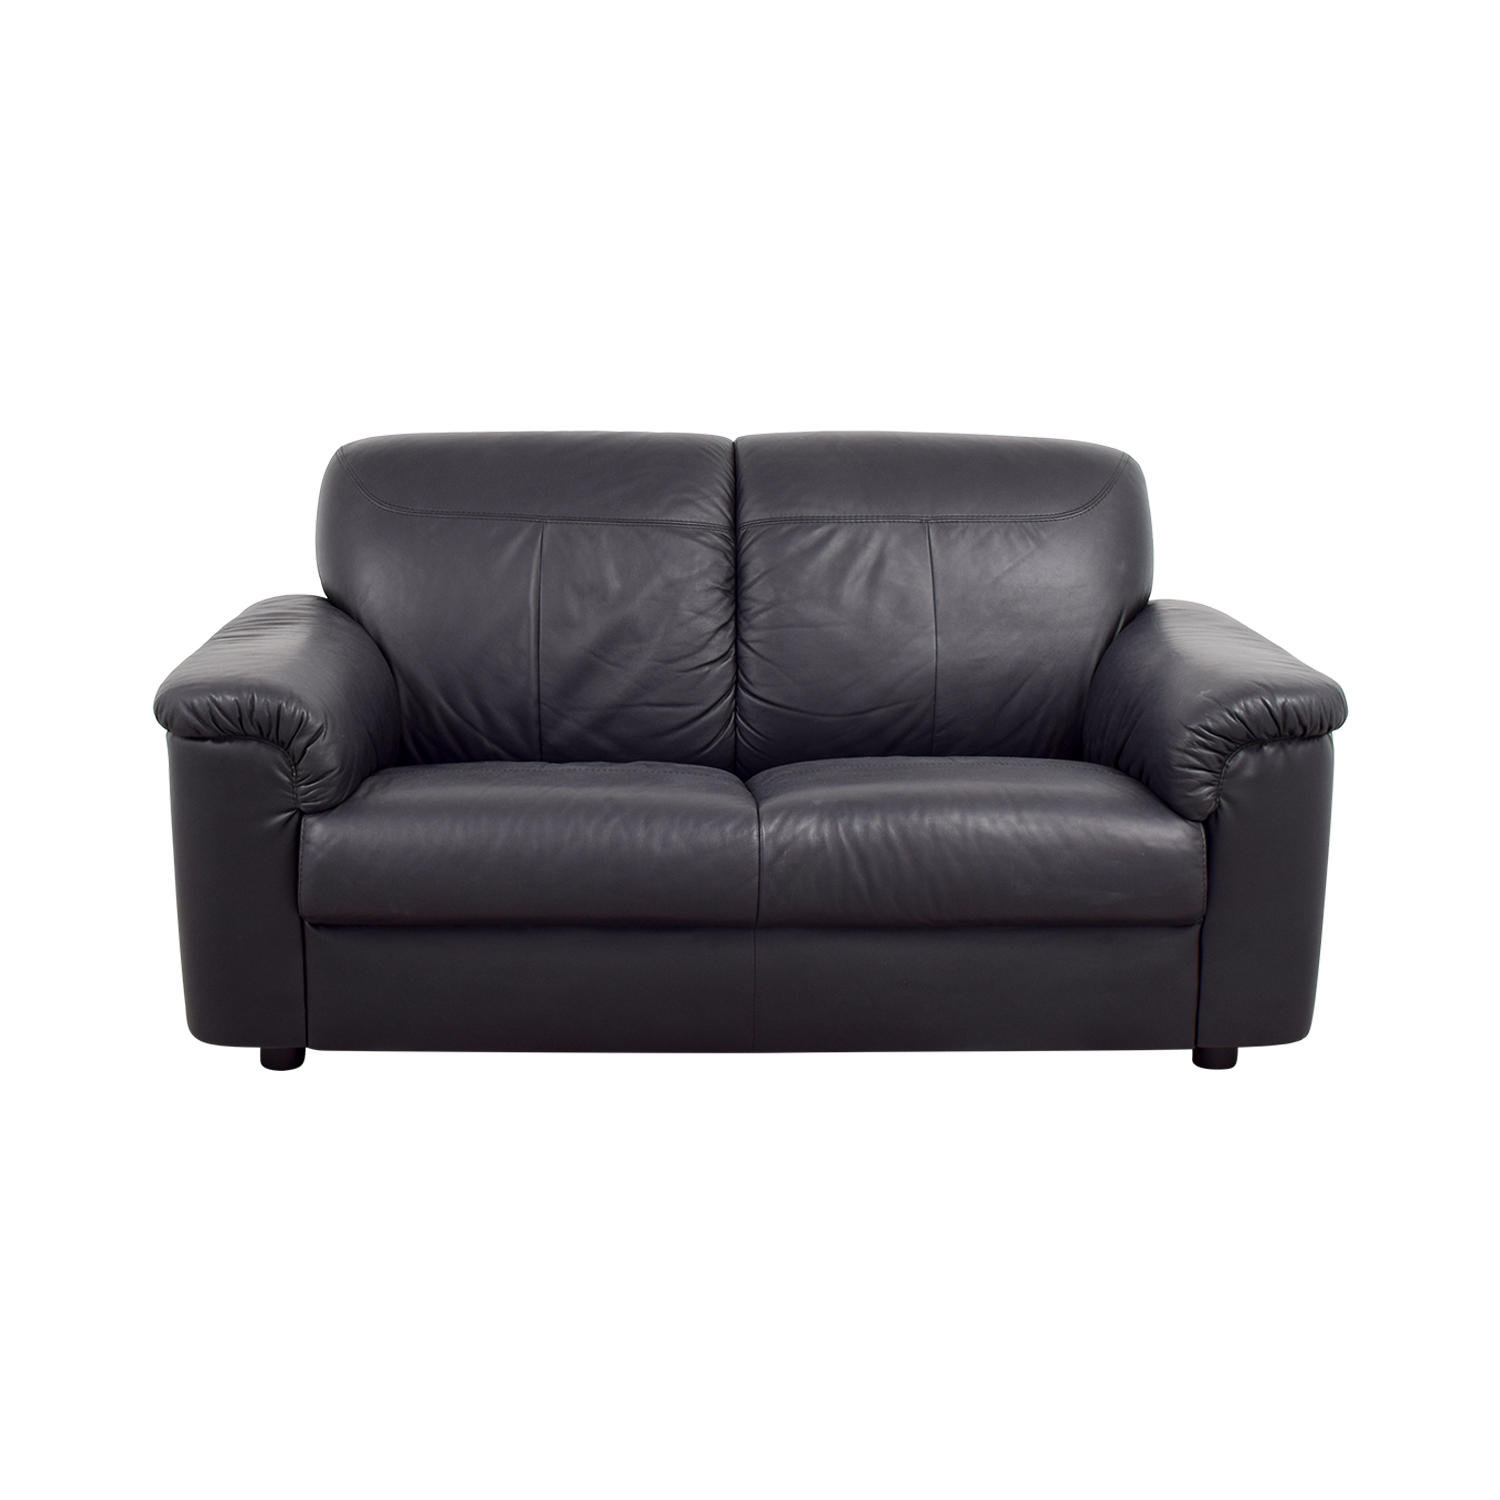 81 Off Ikea Ikea Black Leather Loveseat With Pillowed